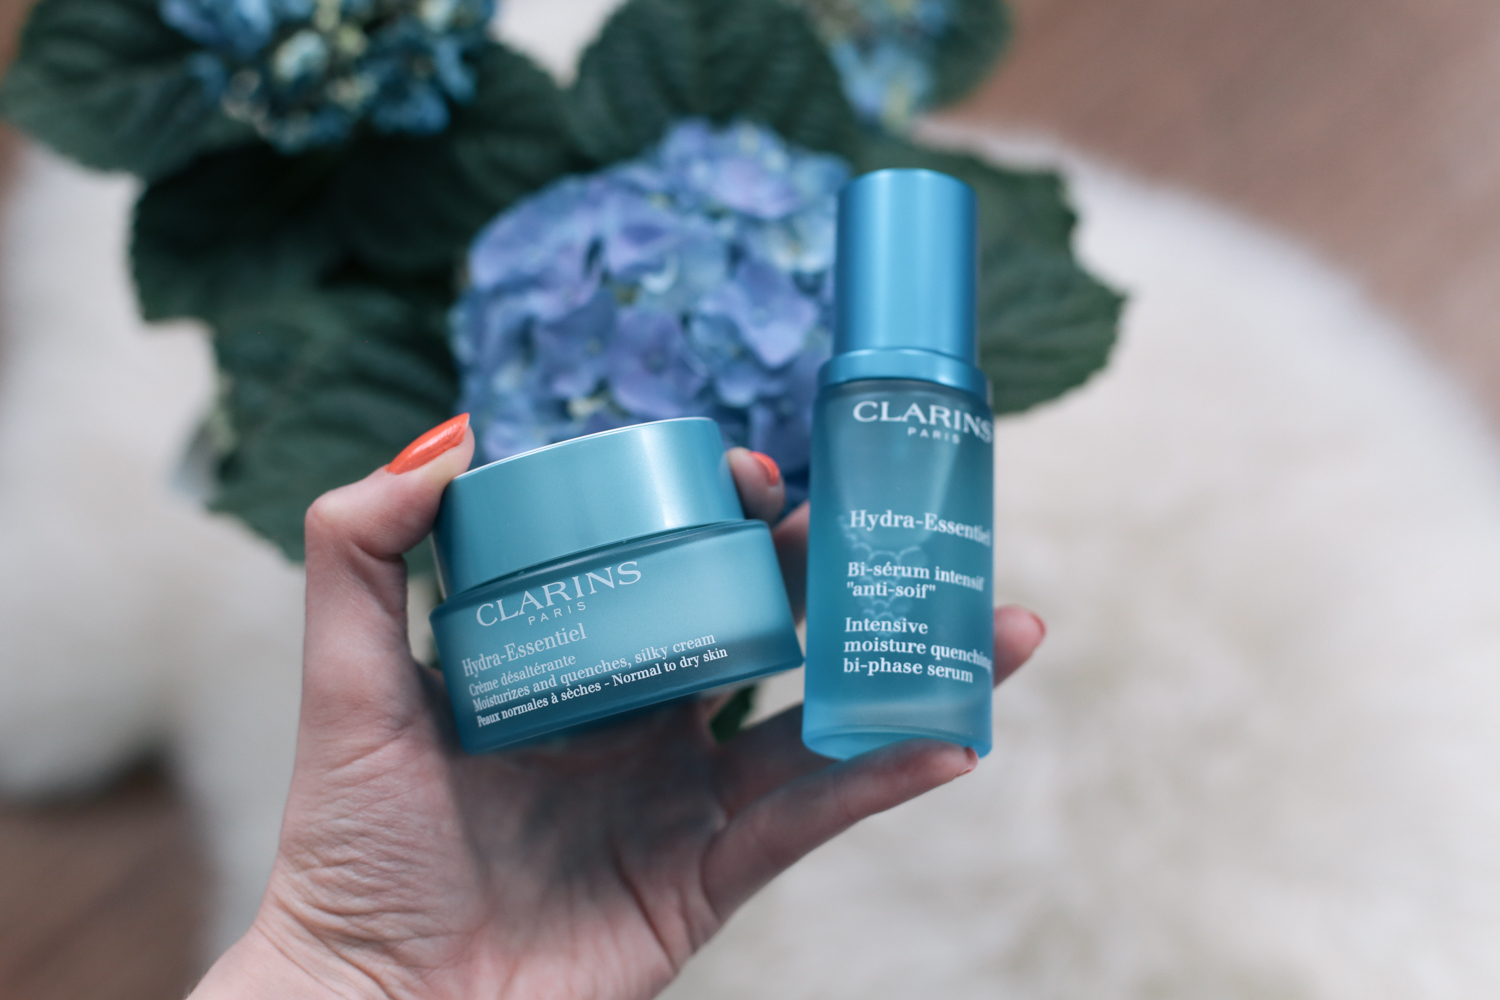 clarins spring 2017 products (2 of 8)